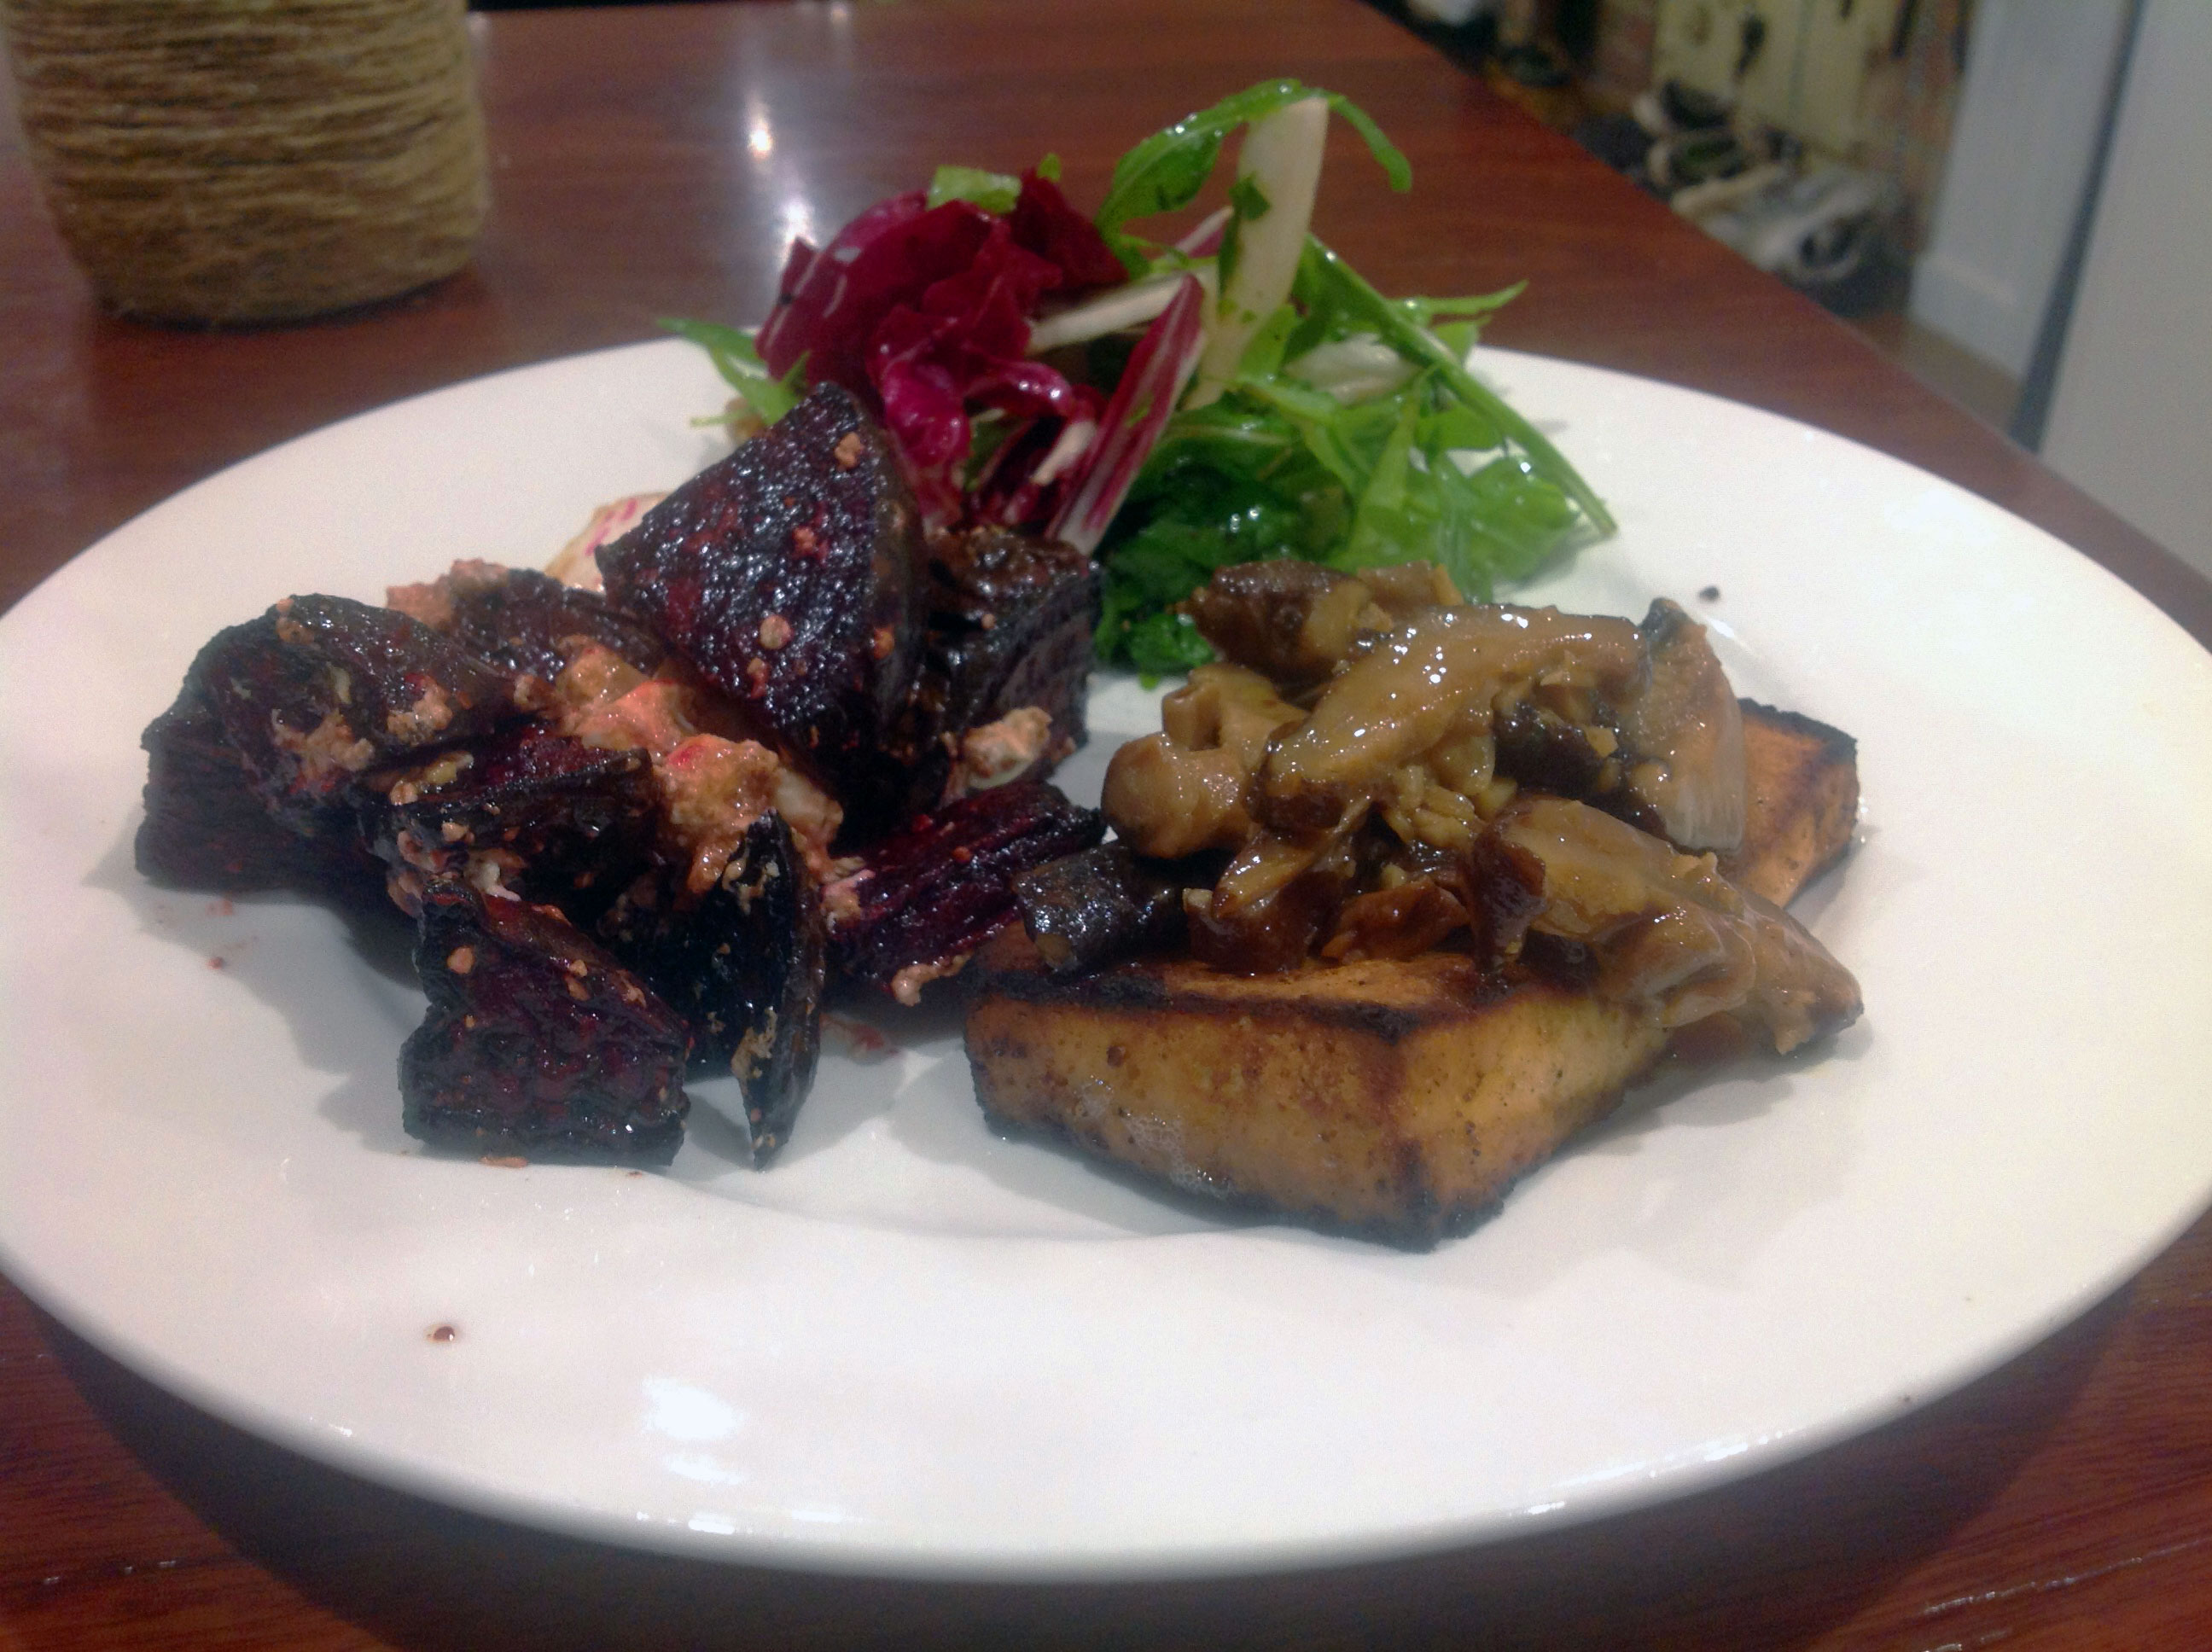 The finished dish, tofu steak with mushroom ragout recipe